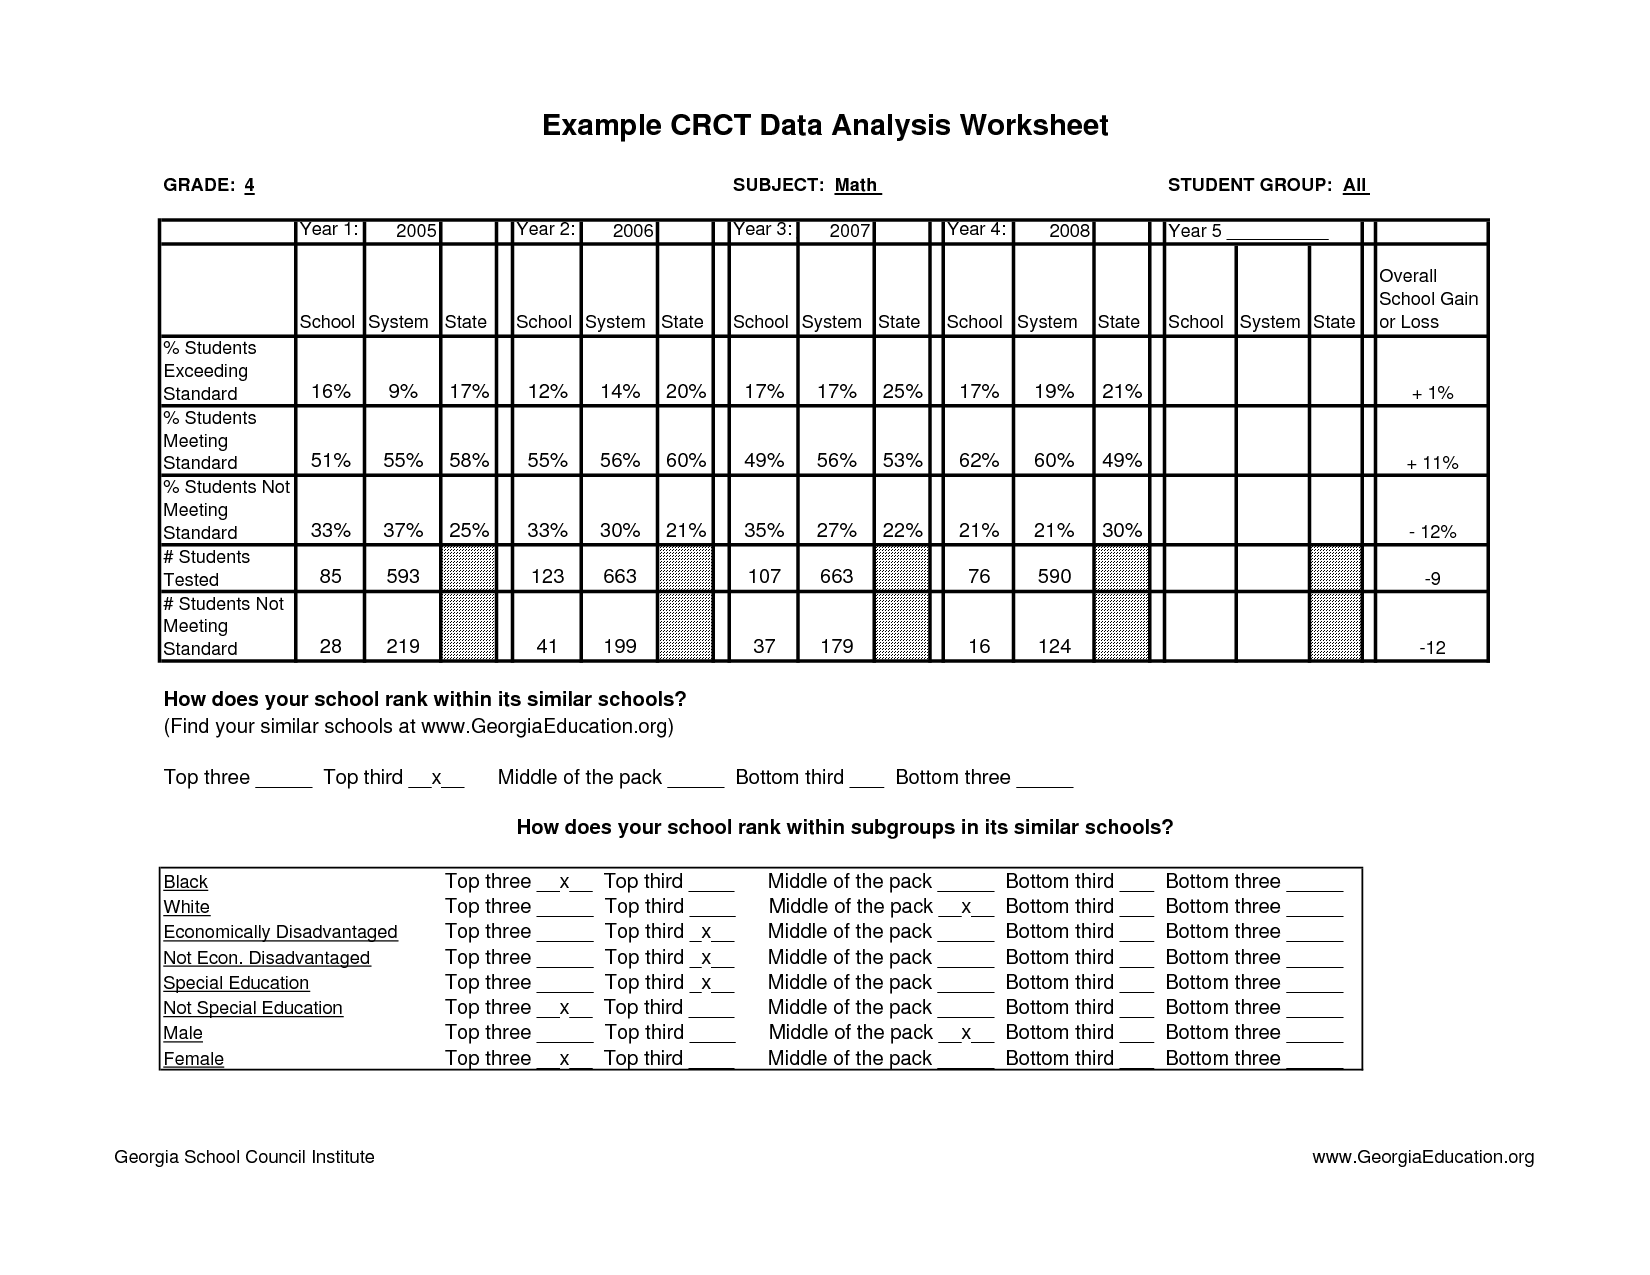 Example CRCT Data Analysis Worksheet : 7 Data Analysis Worksheets ...